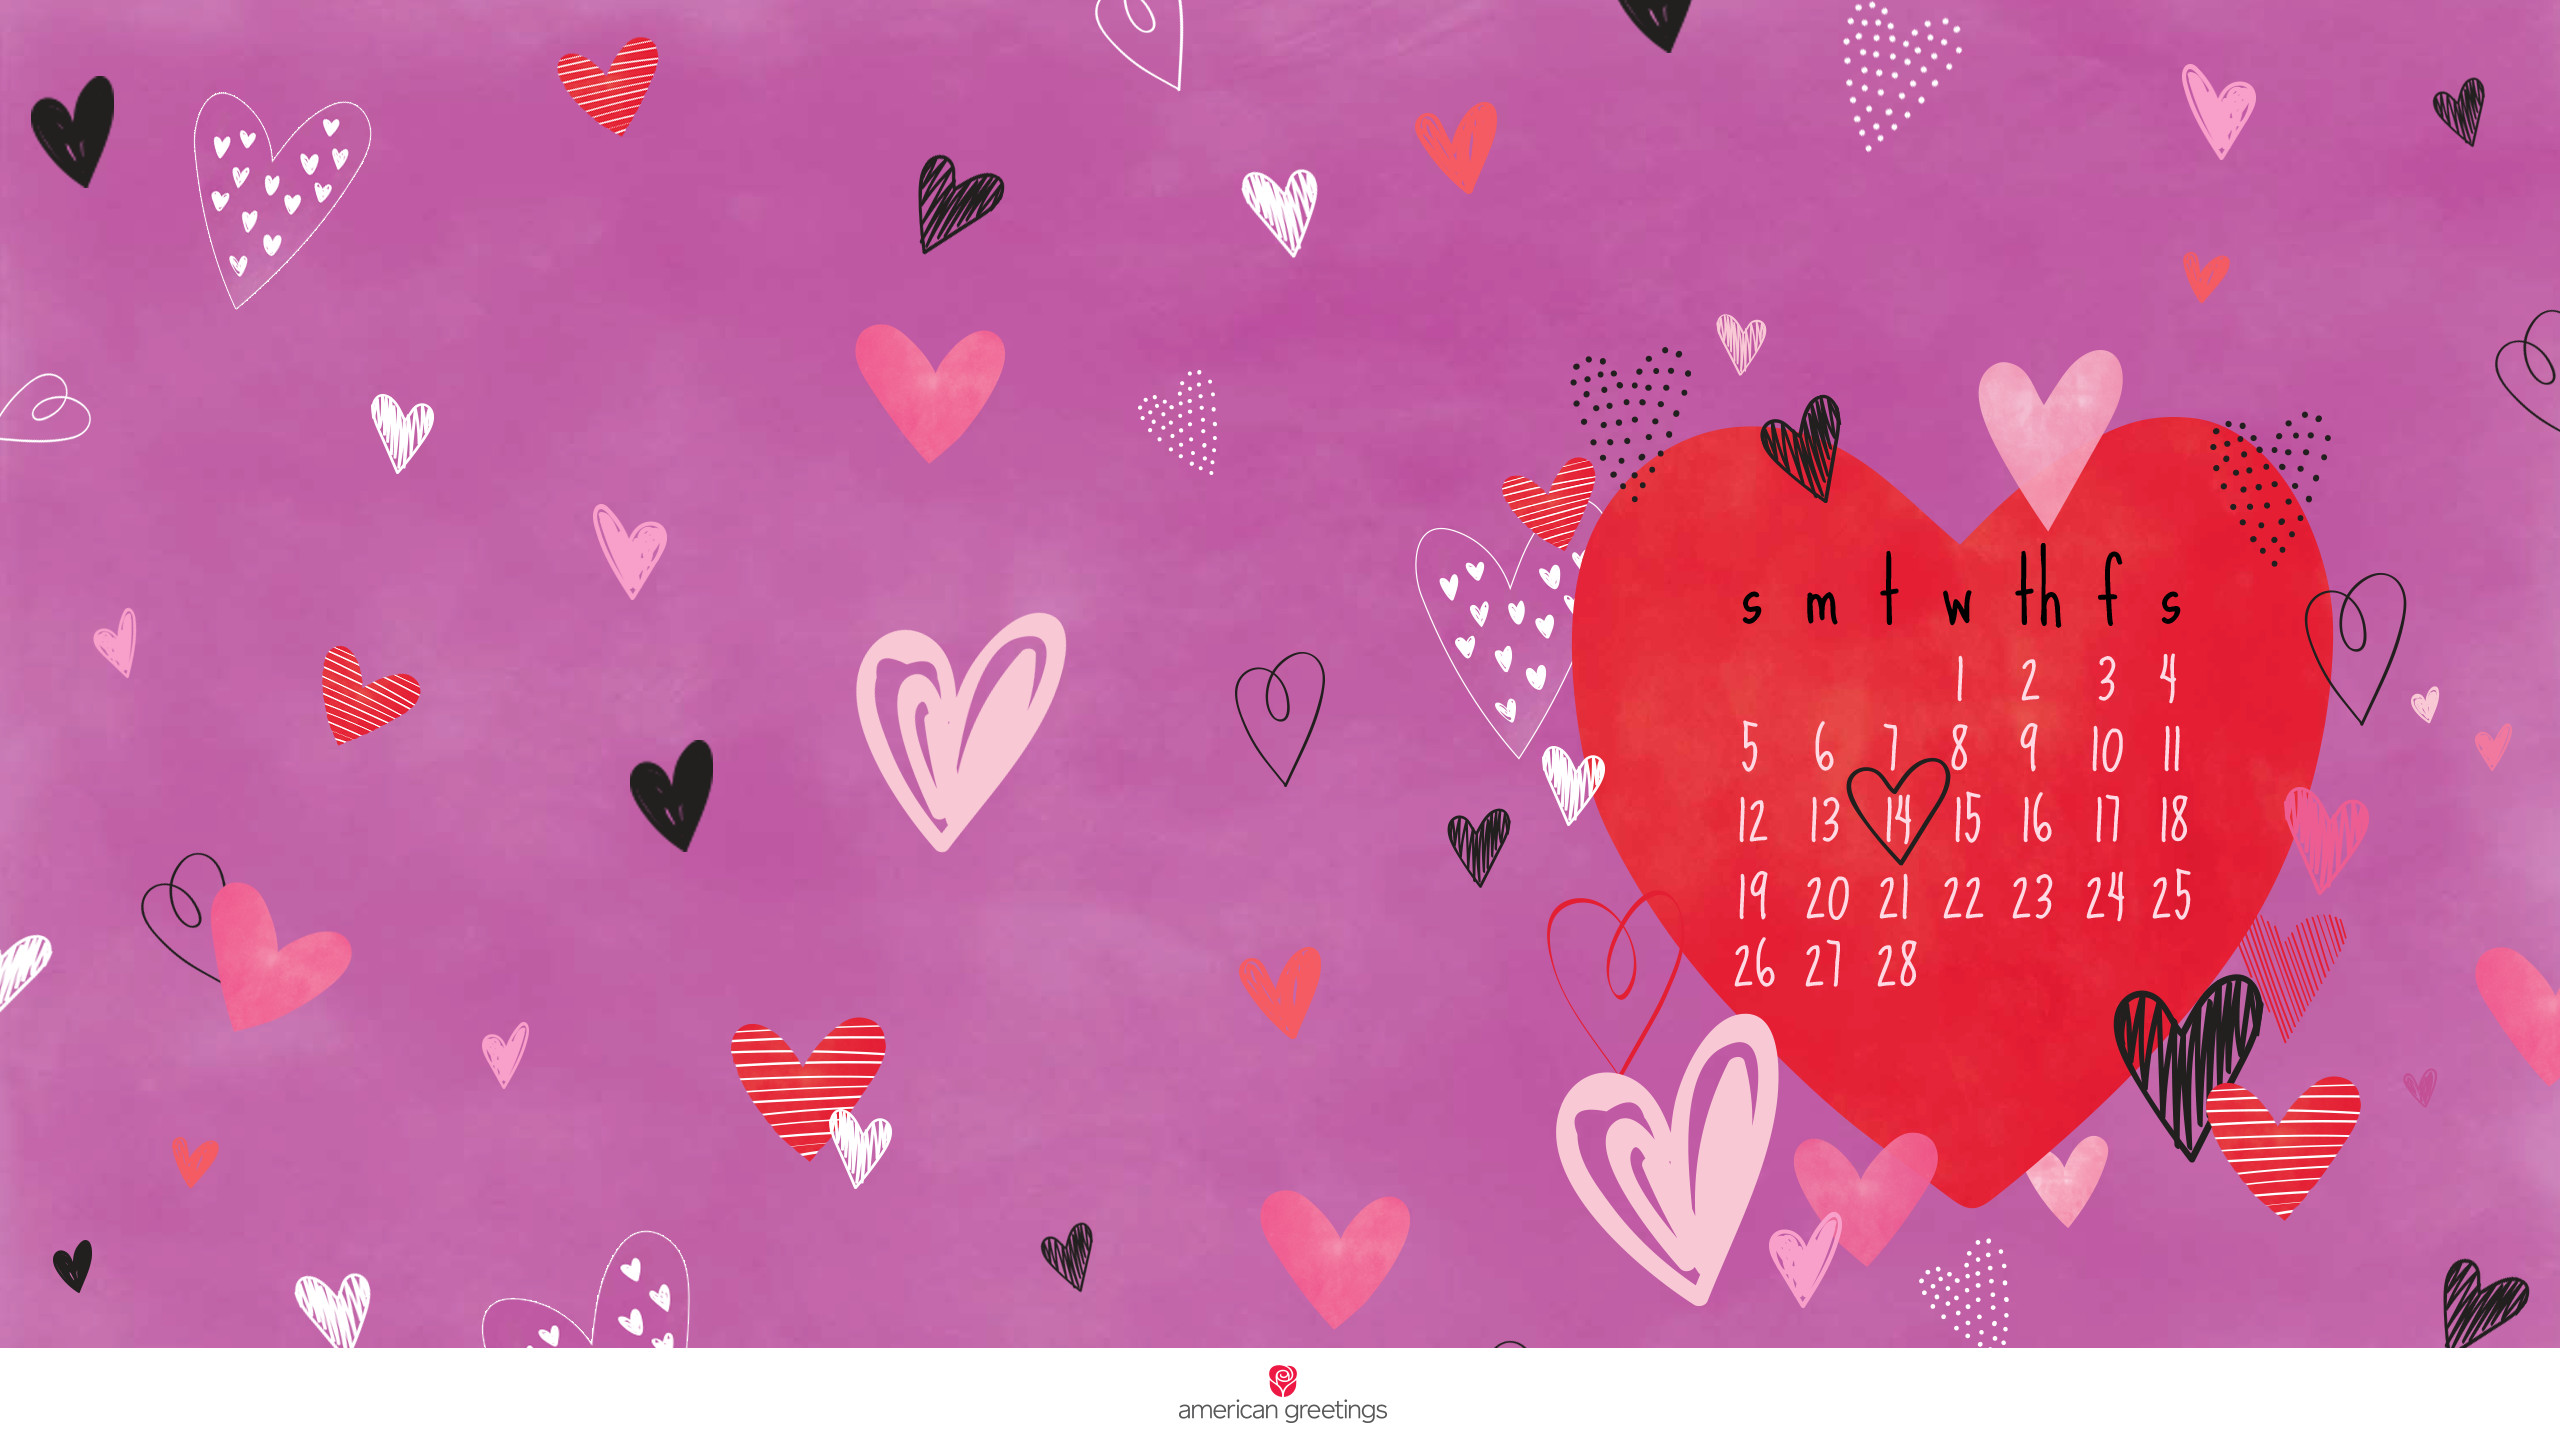 American Greetings Wallpaper 46 Images